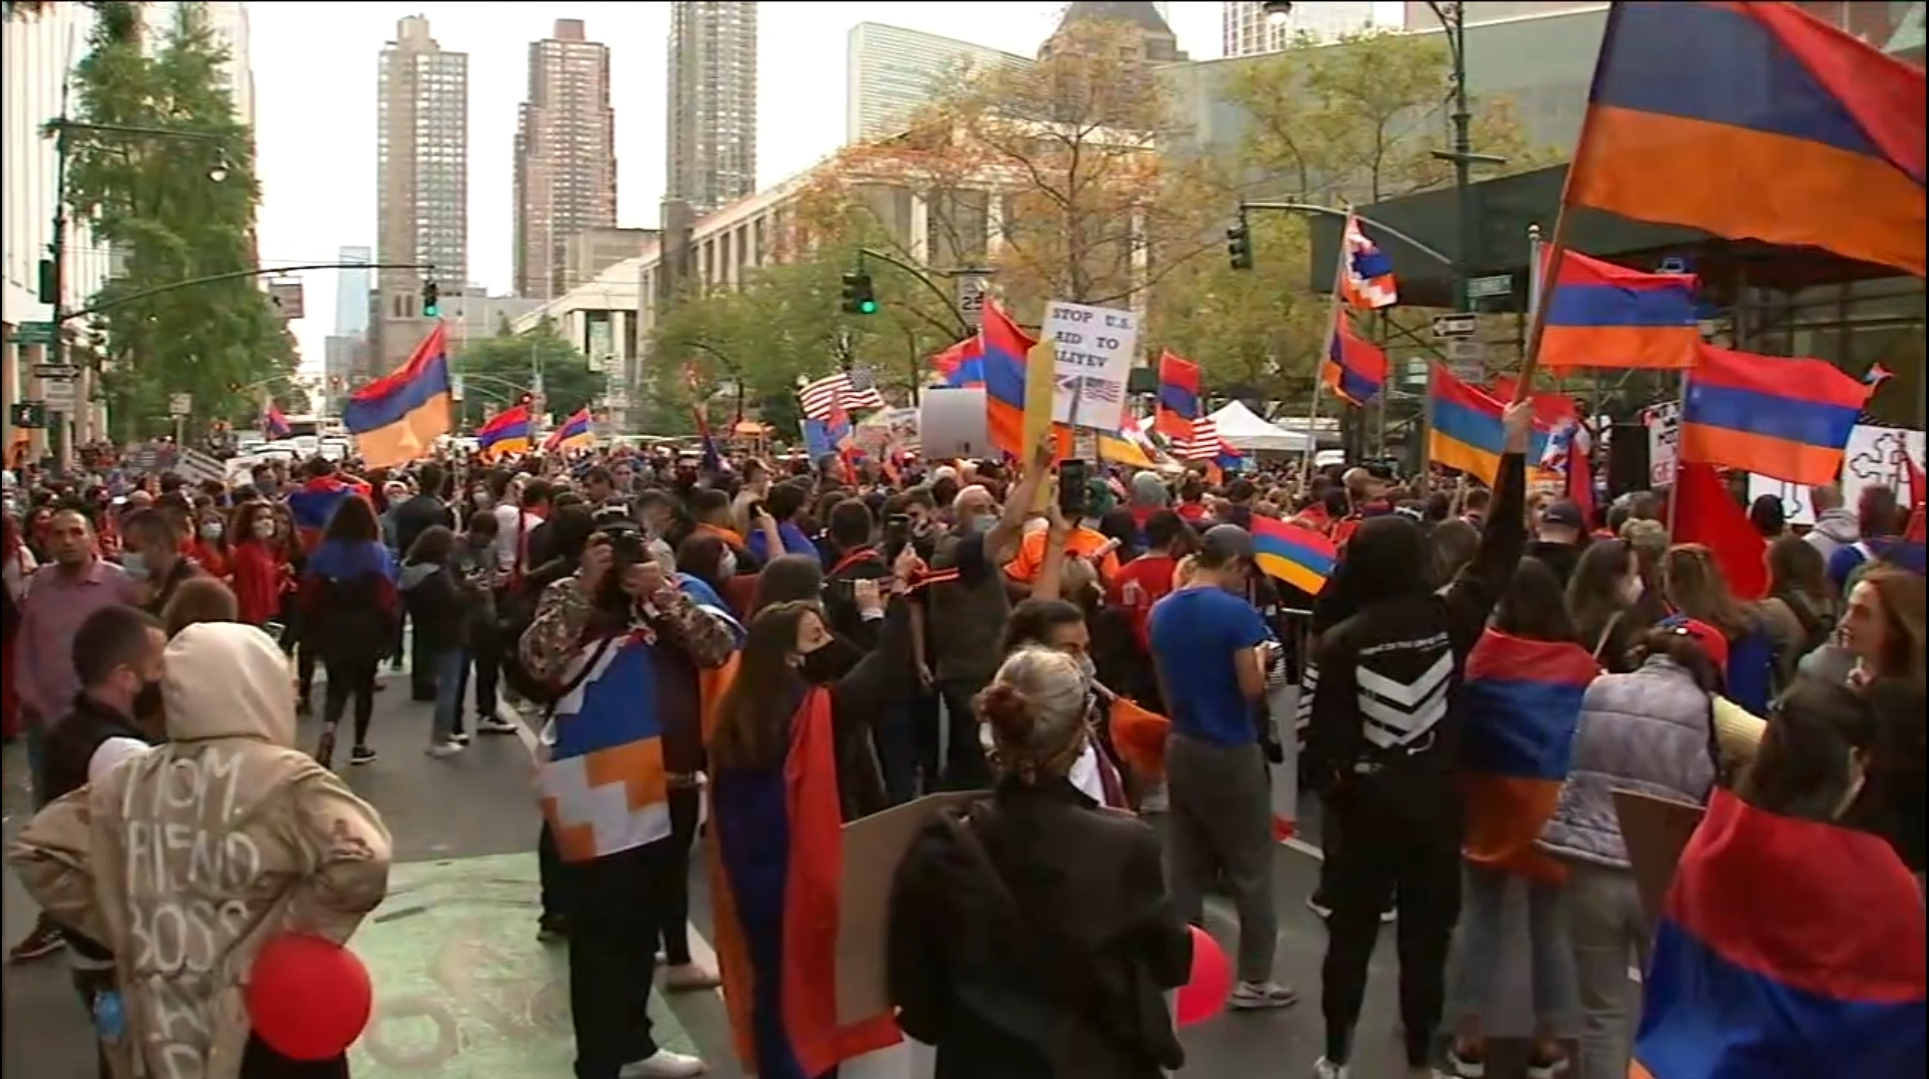 Armenian demonstrators block Manhattan street, call for aid